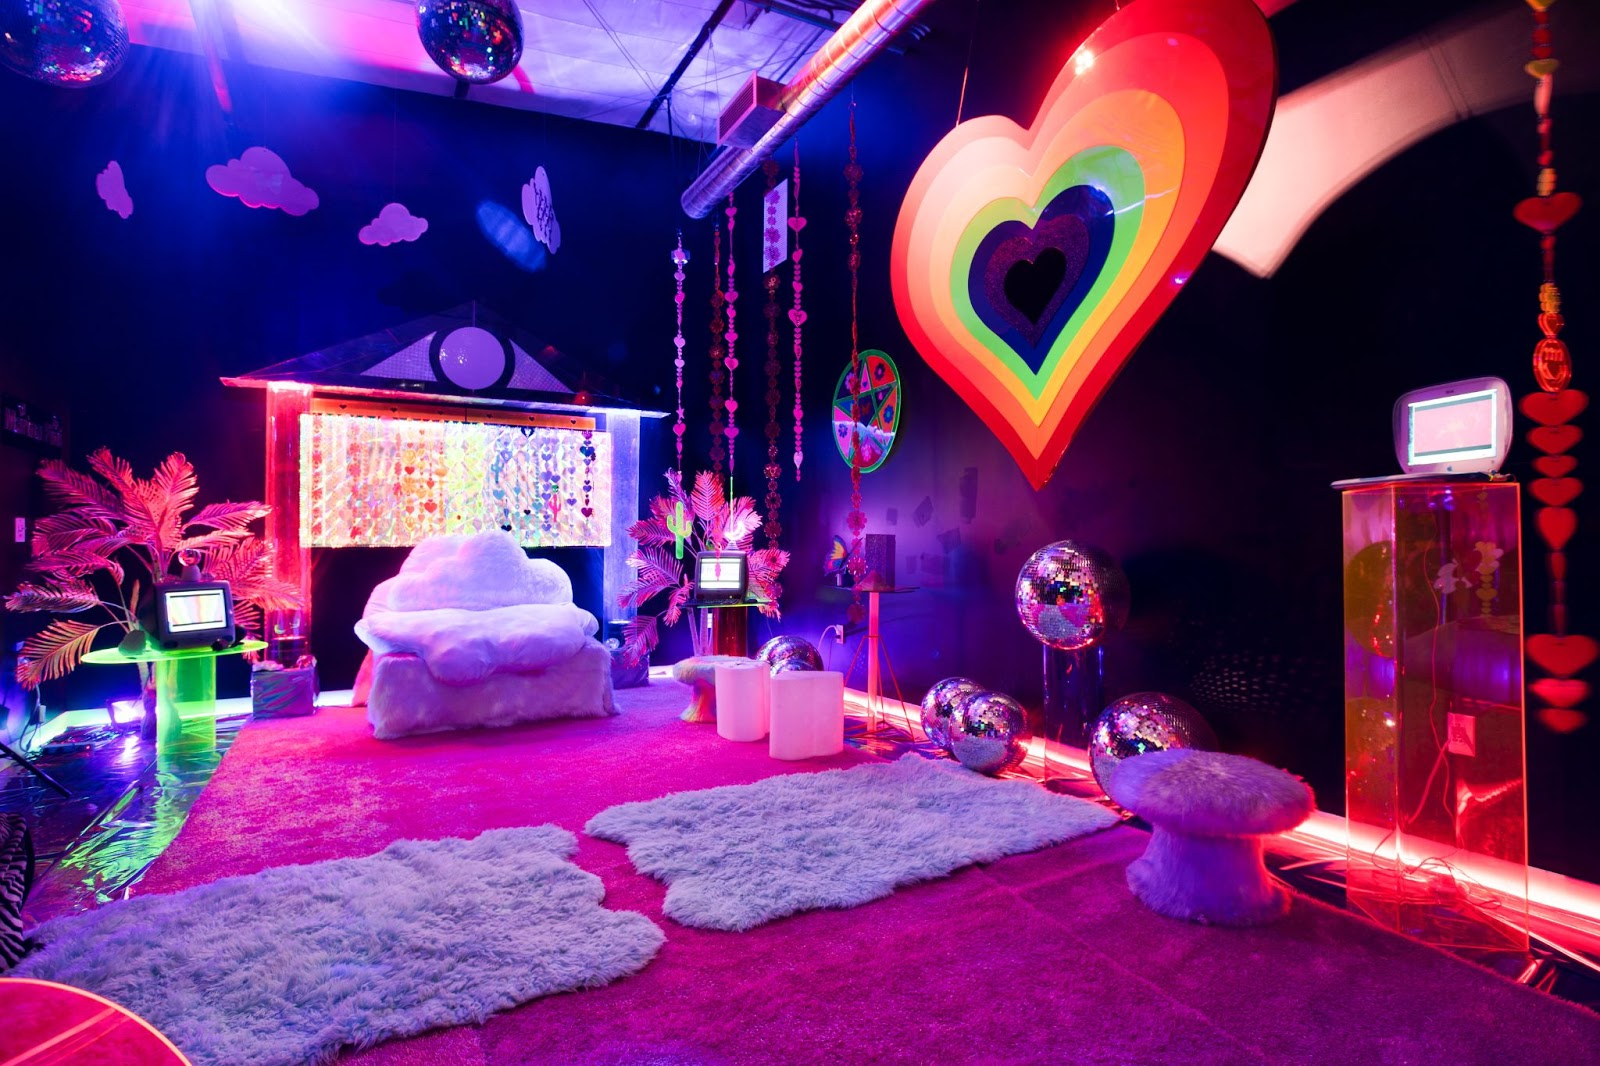 Room filled with a giant rainbow heart and disco balls on the ceiling